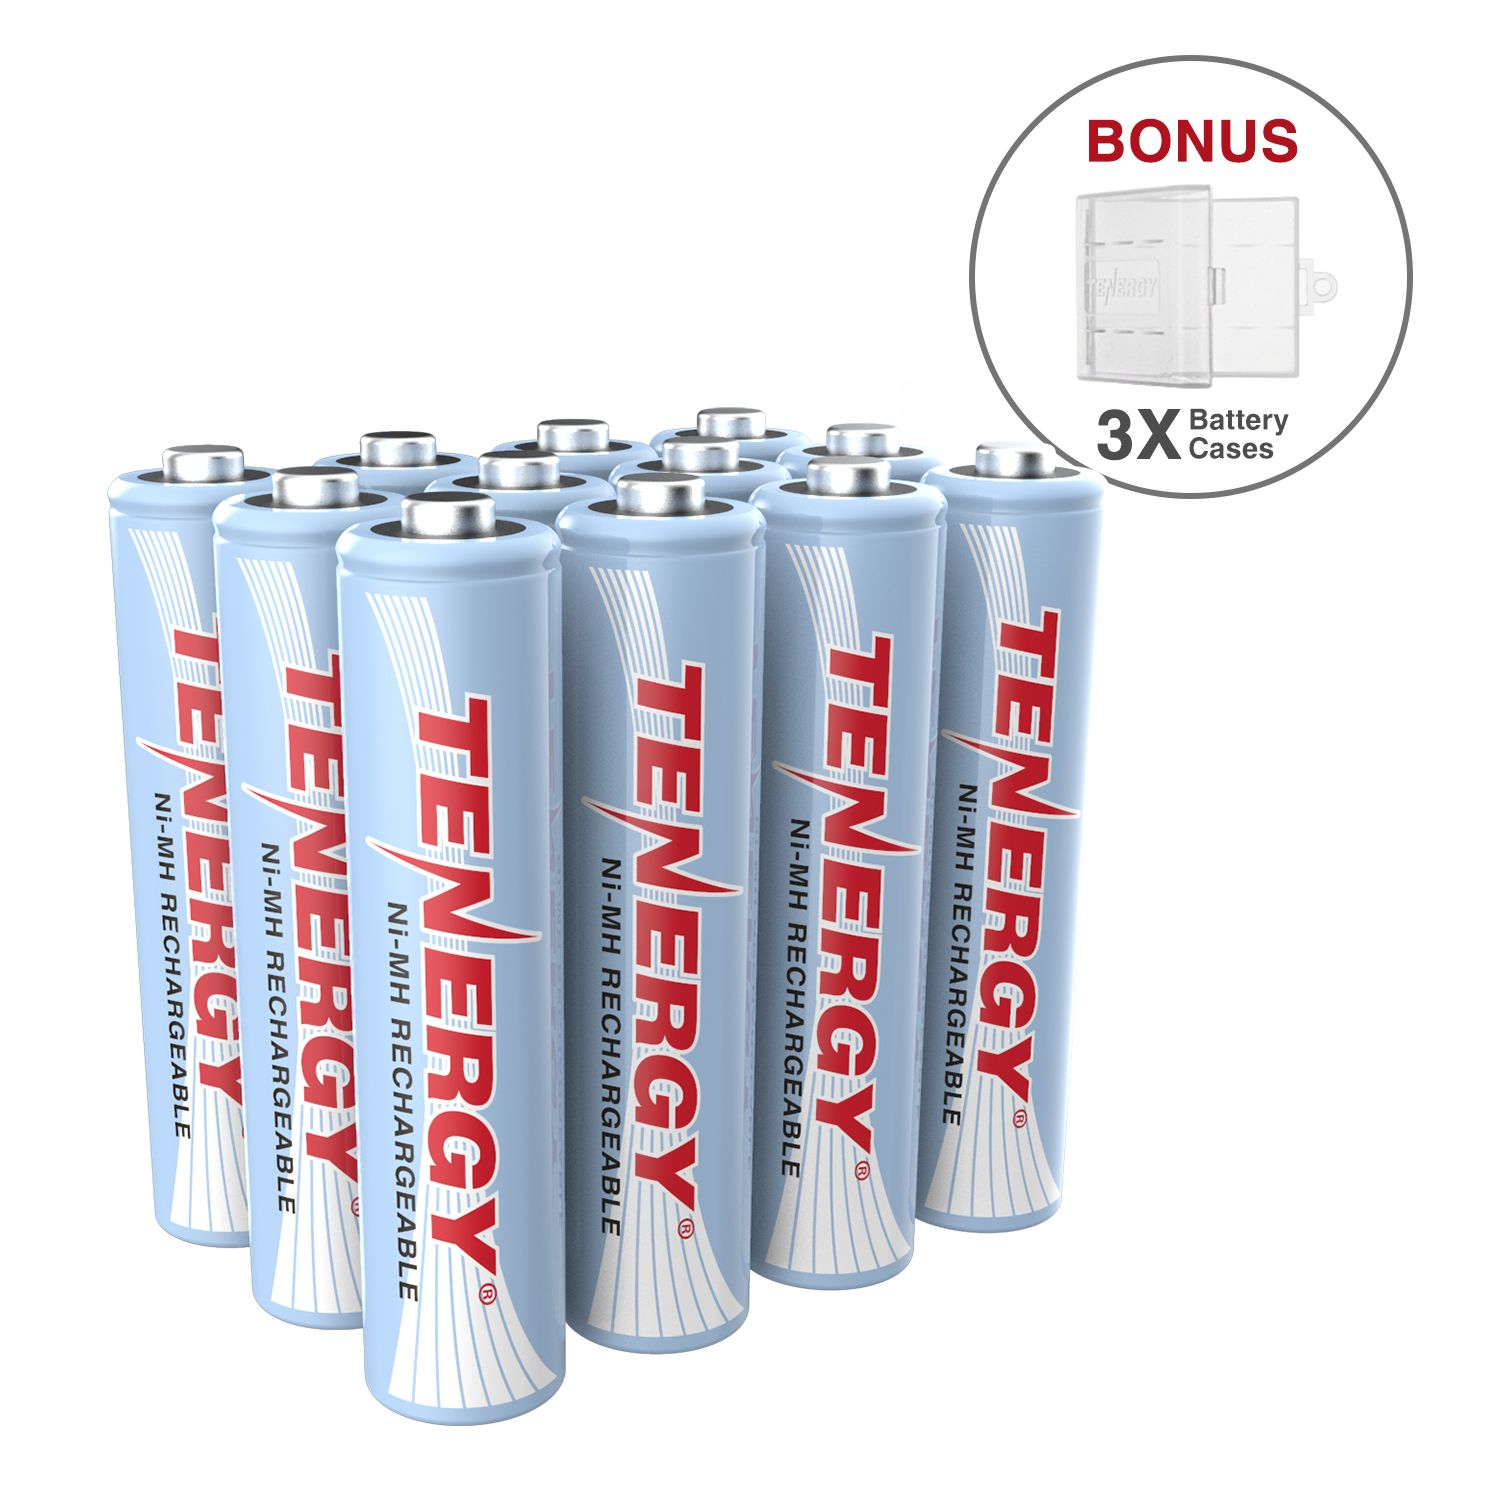 12 Pcs Tenergy Aaa 1000mah Nimh Rechargeable Batteries 3 Aaa Size Holders Rechargeable Batteries Nimh Batteries